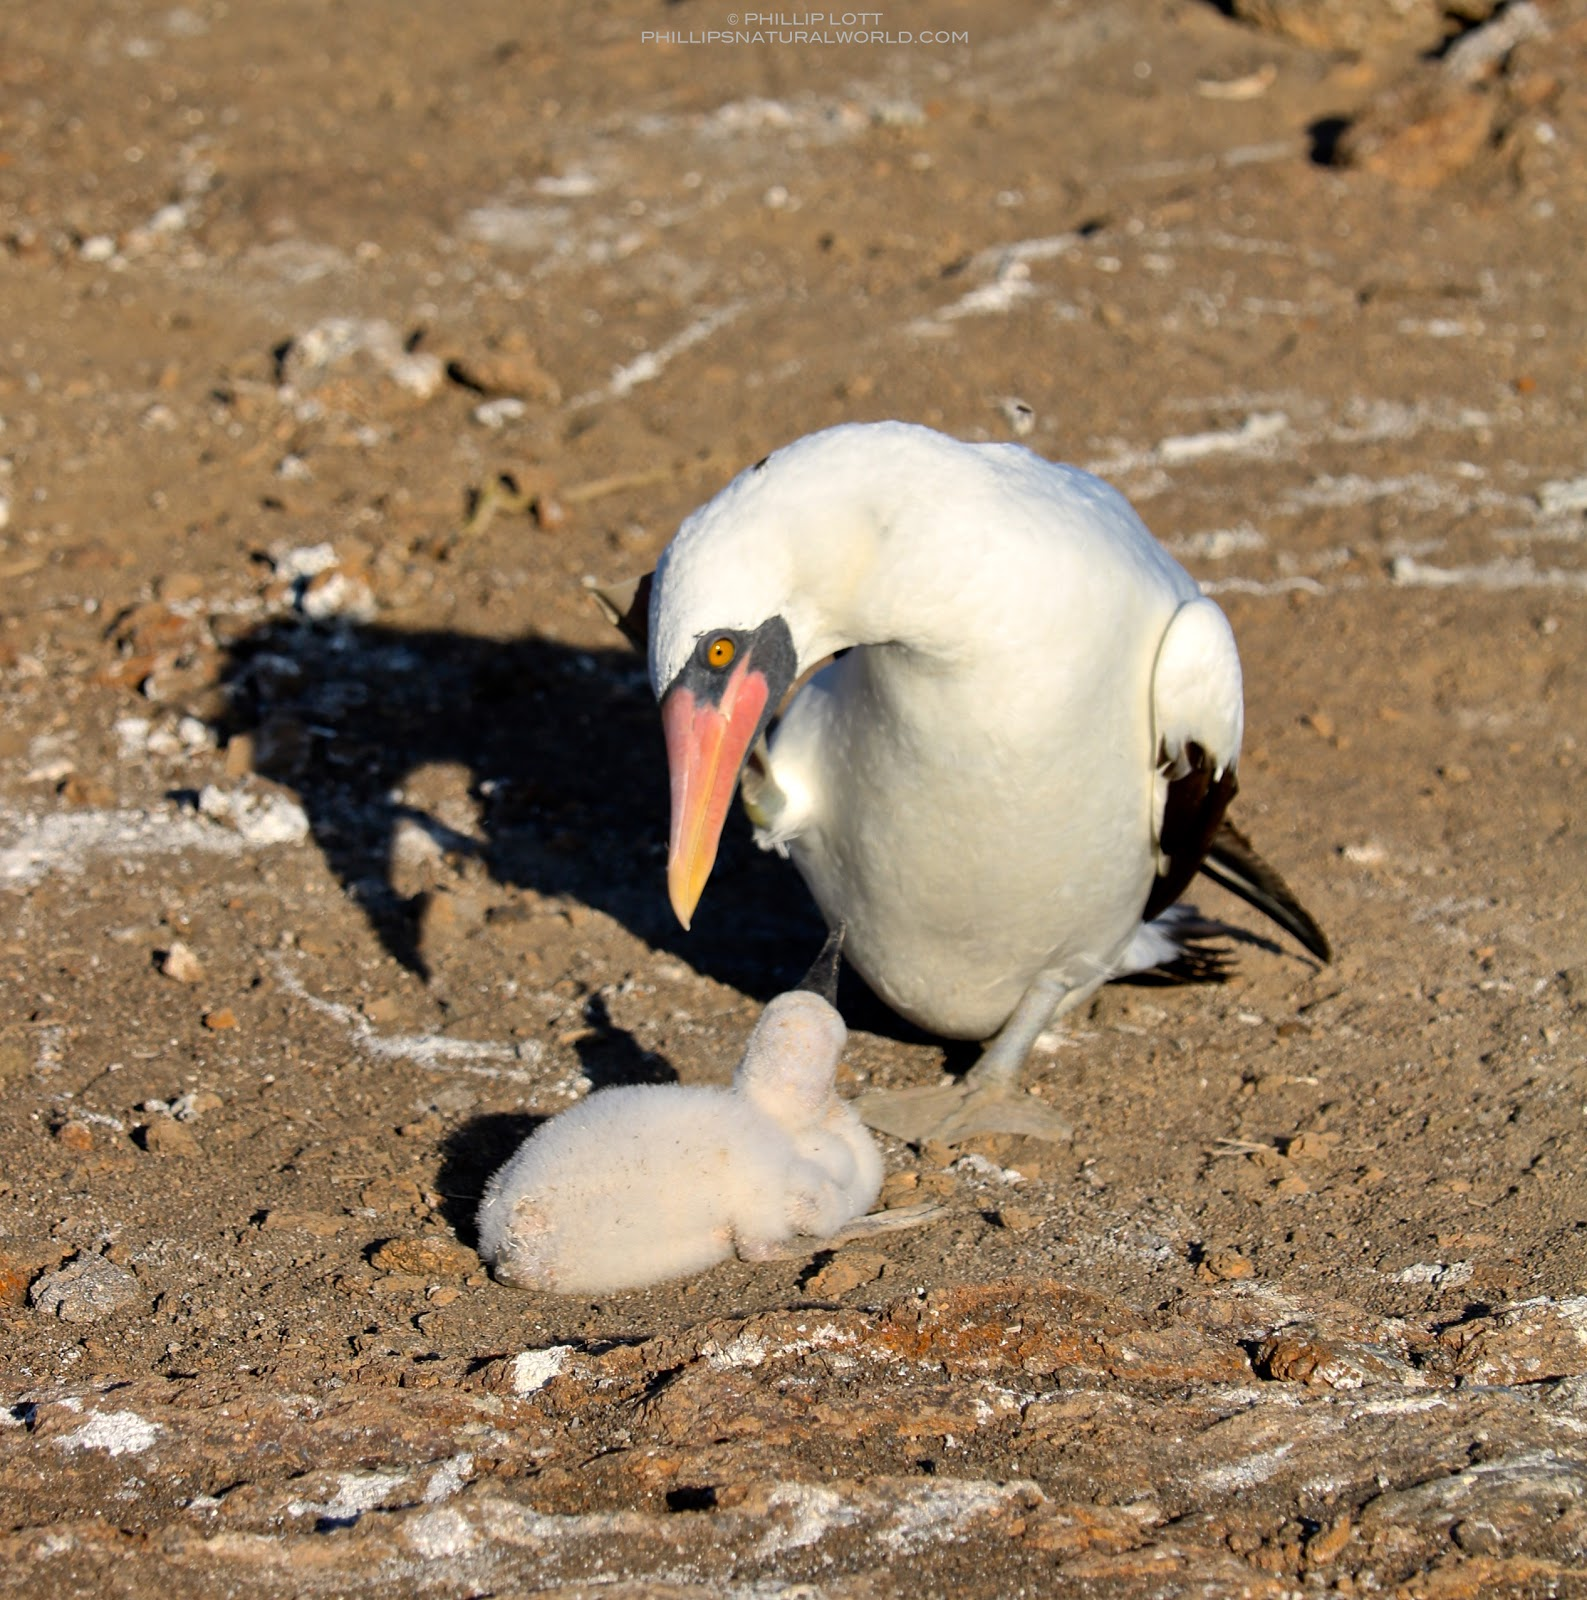 in cases where there are two chicks the guides tell us the younger is usually killed by the older sibling